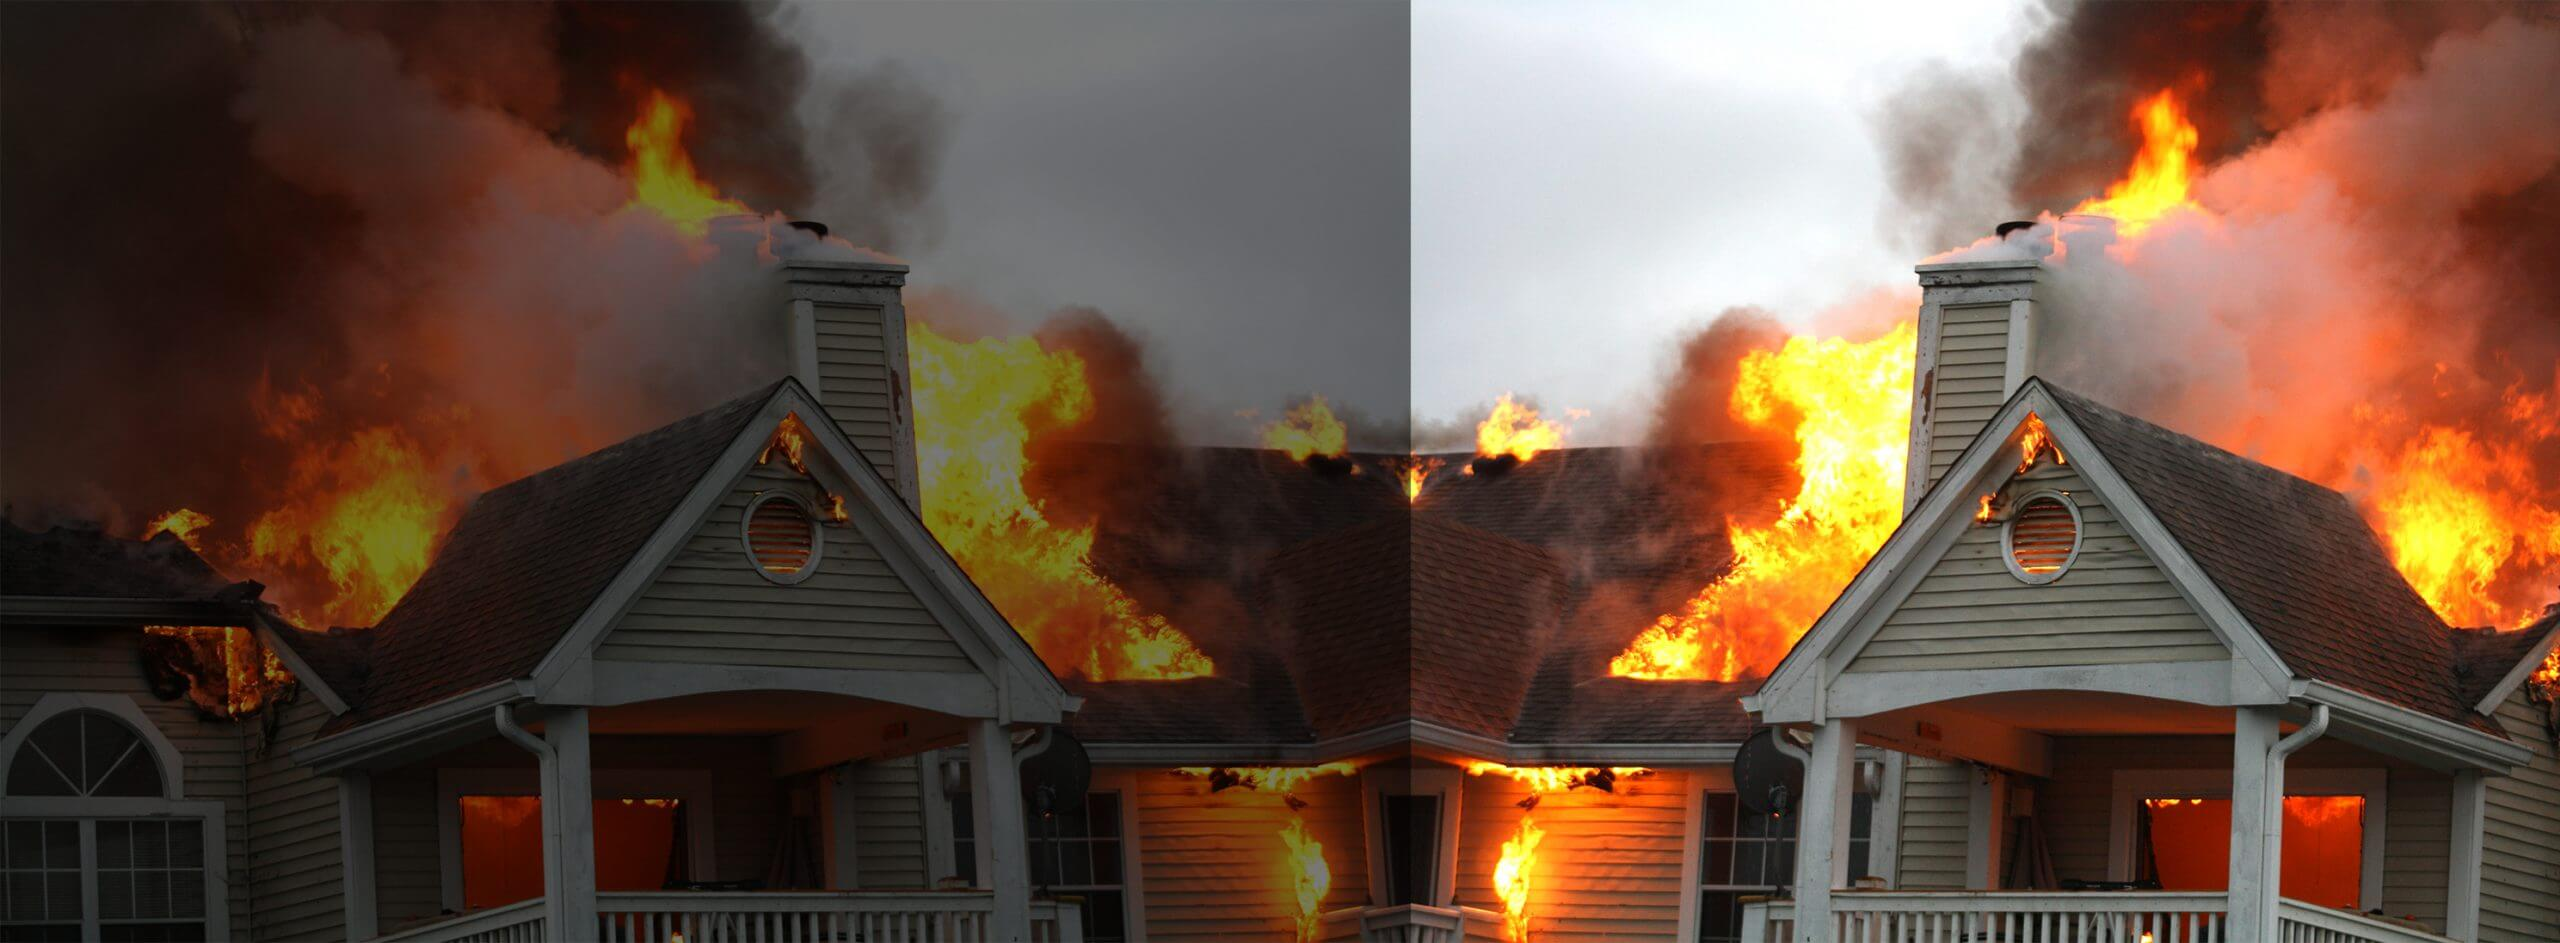 Chimcare Avoid Chimney Fires House Fire Image